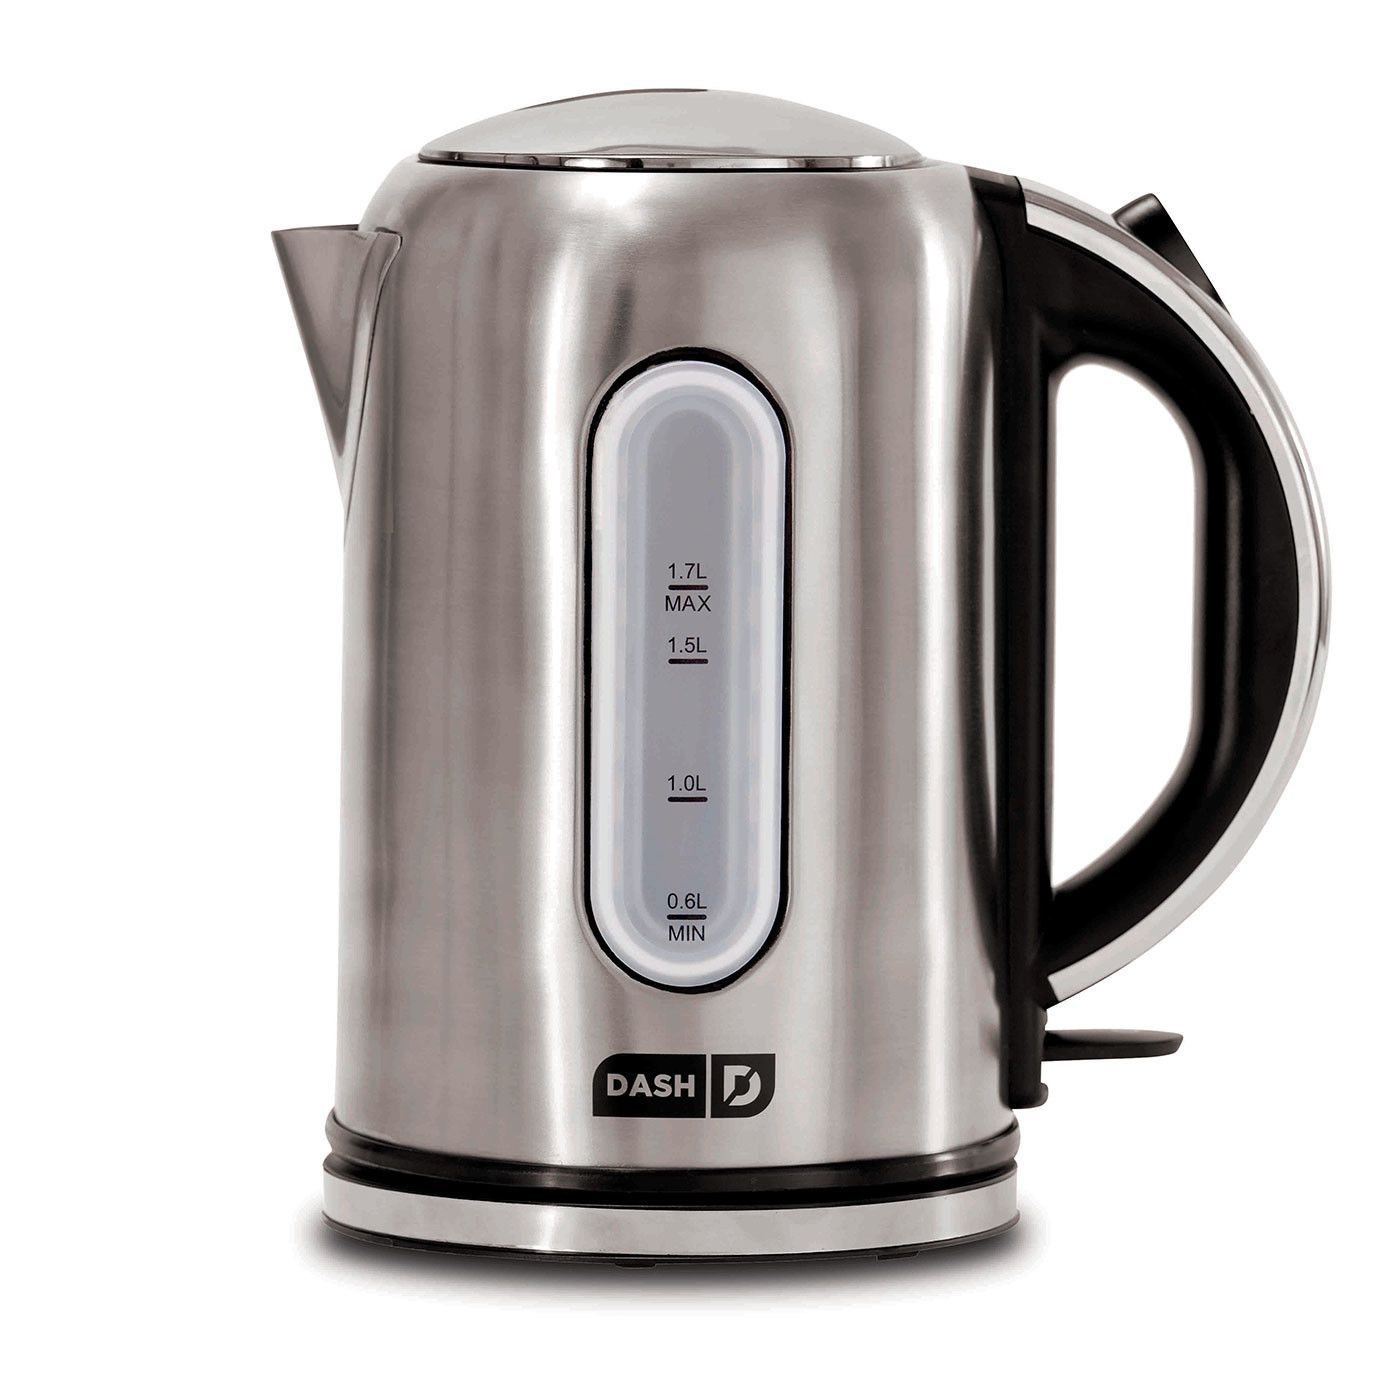 1.75QT Electric Rapid Kettle | Products